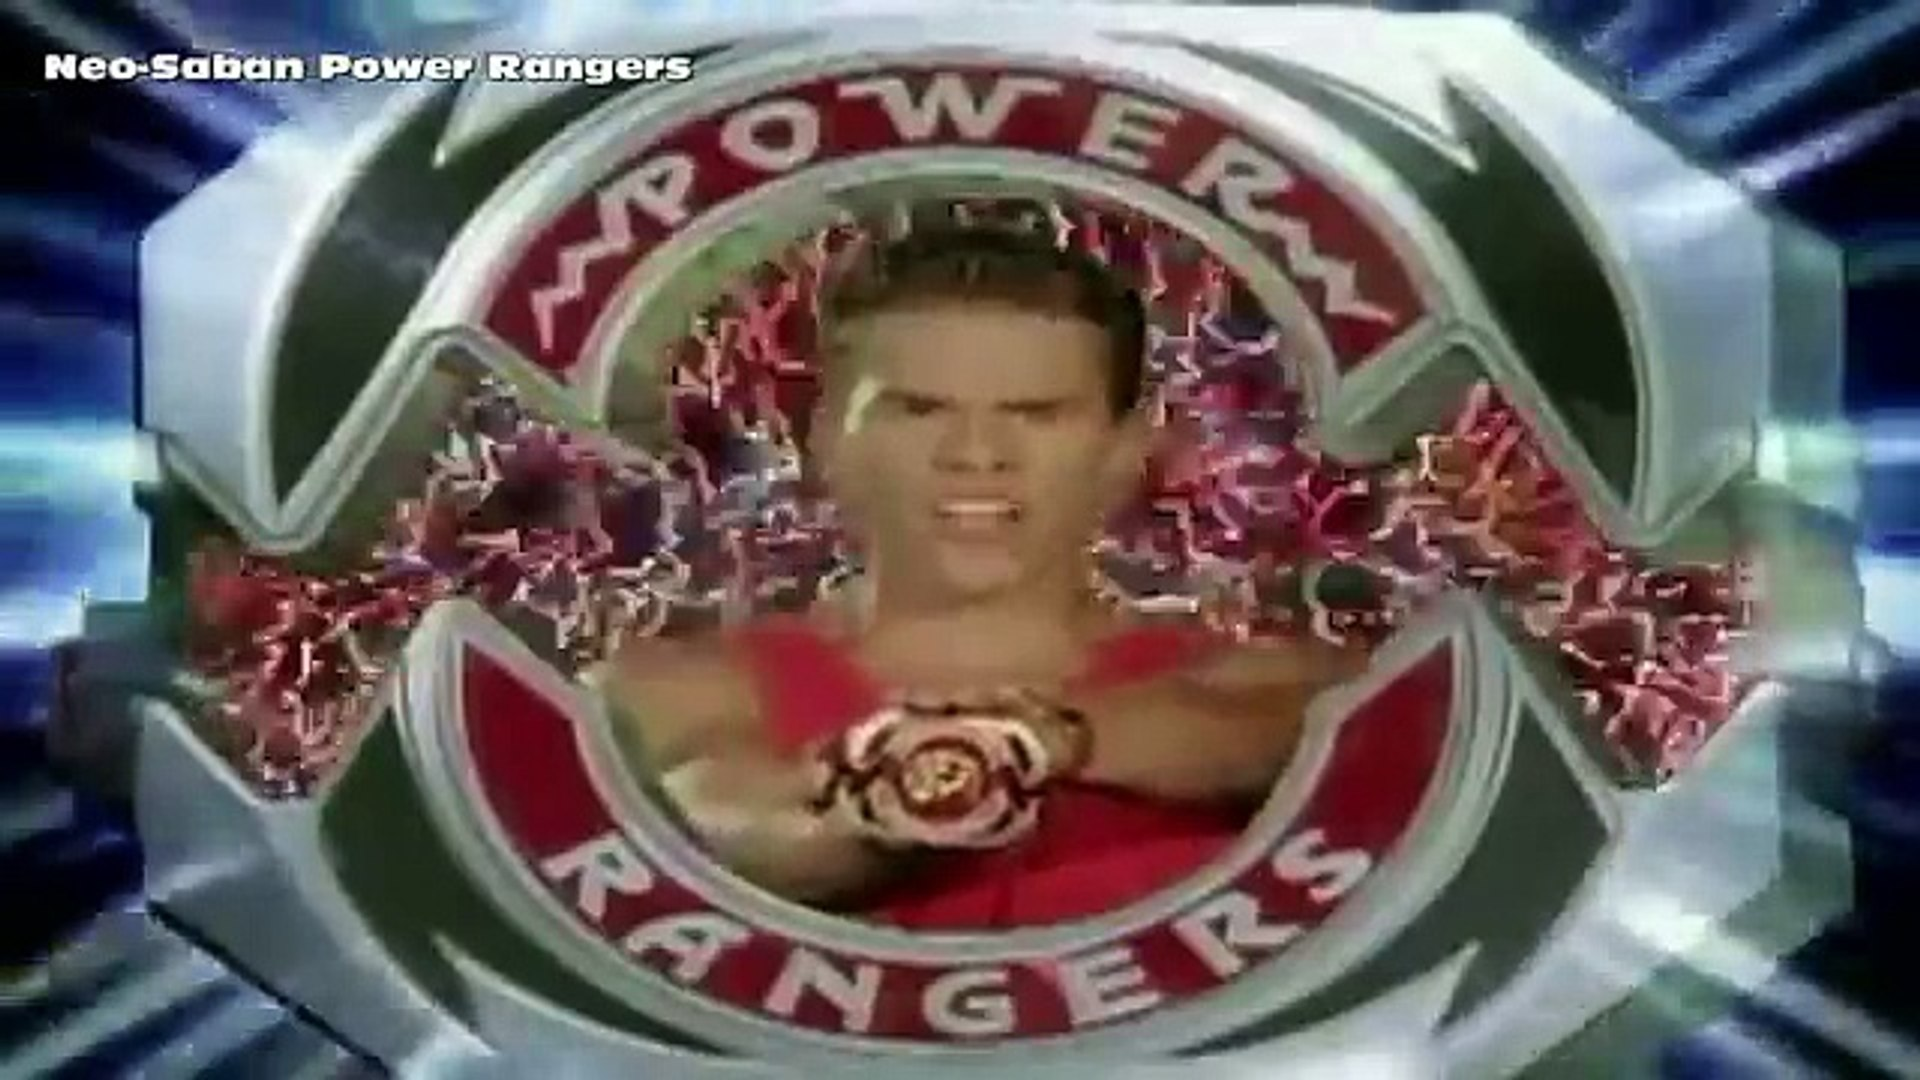 Power Rangers - All Rangers Morphs | Mighty Morphin Power Rangers - Dino Super Charge | History